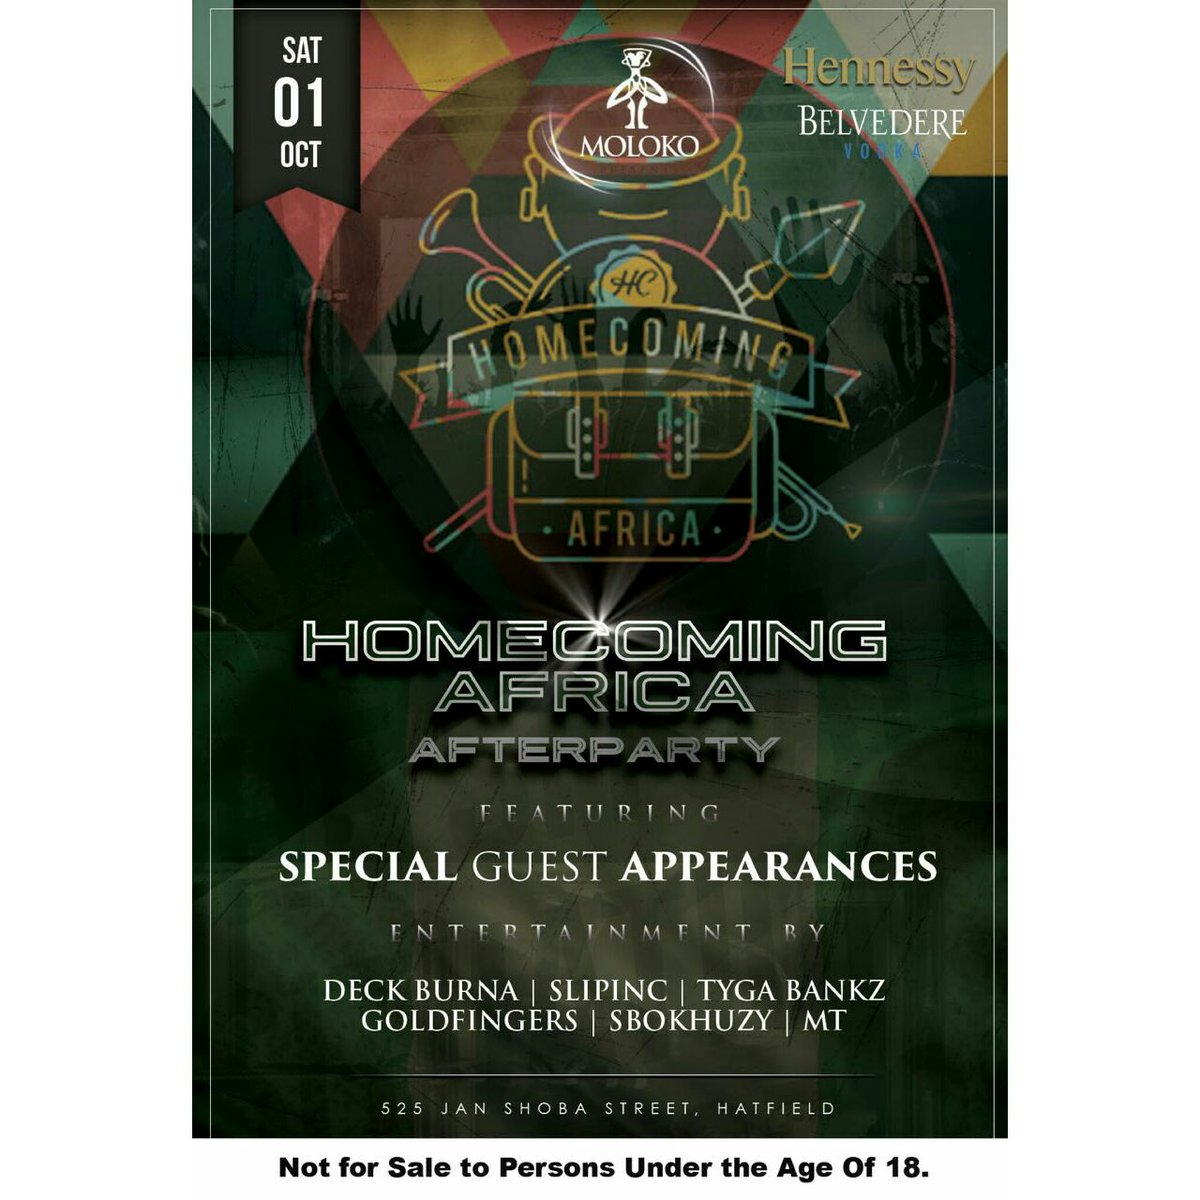 The official #HomeComingAfterParty is @MolokoPretoria 2nyt https://t.co/LmF0i8i58l